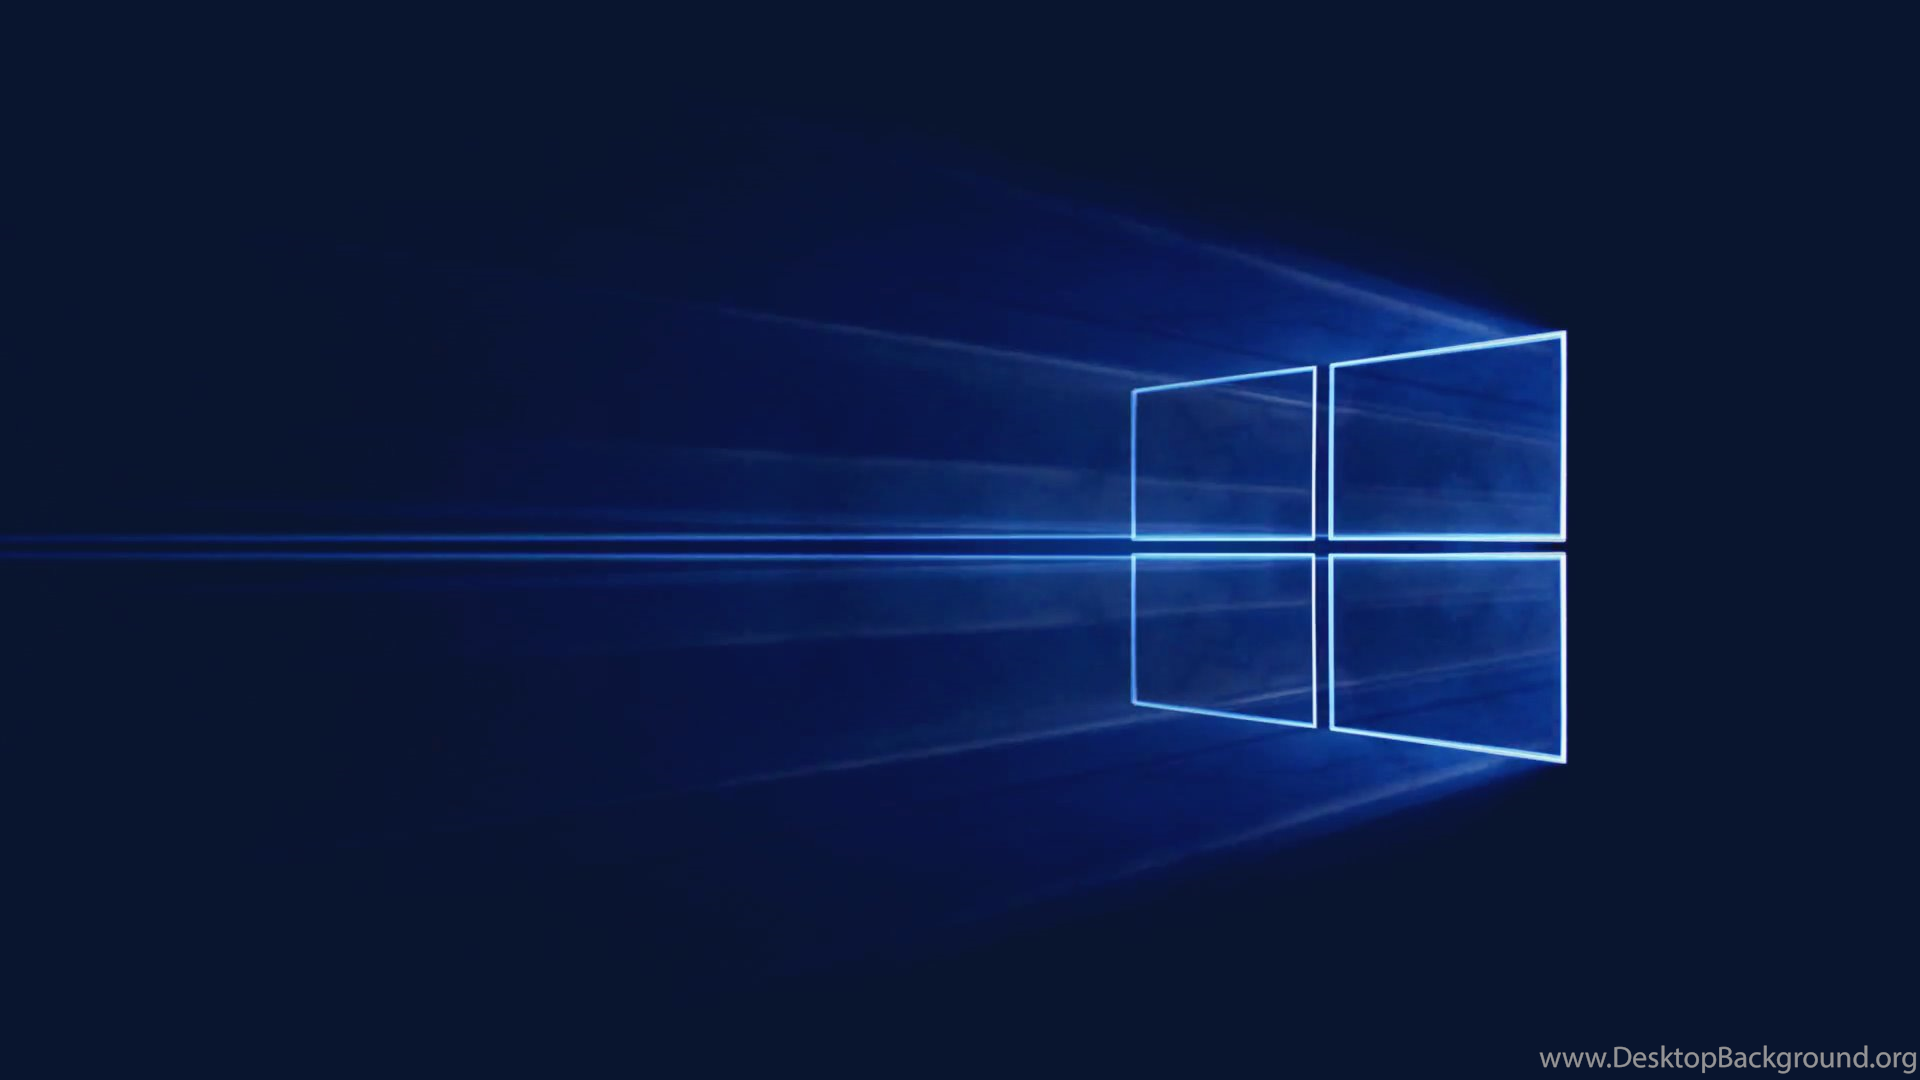 Windows 10 official desktop backgrounds windows 10 for Windows official